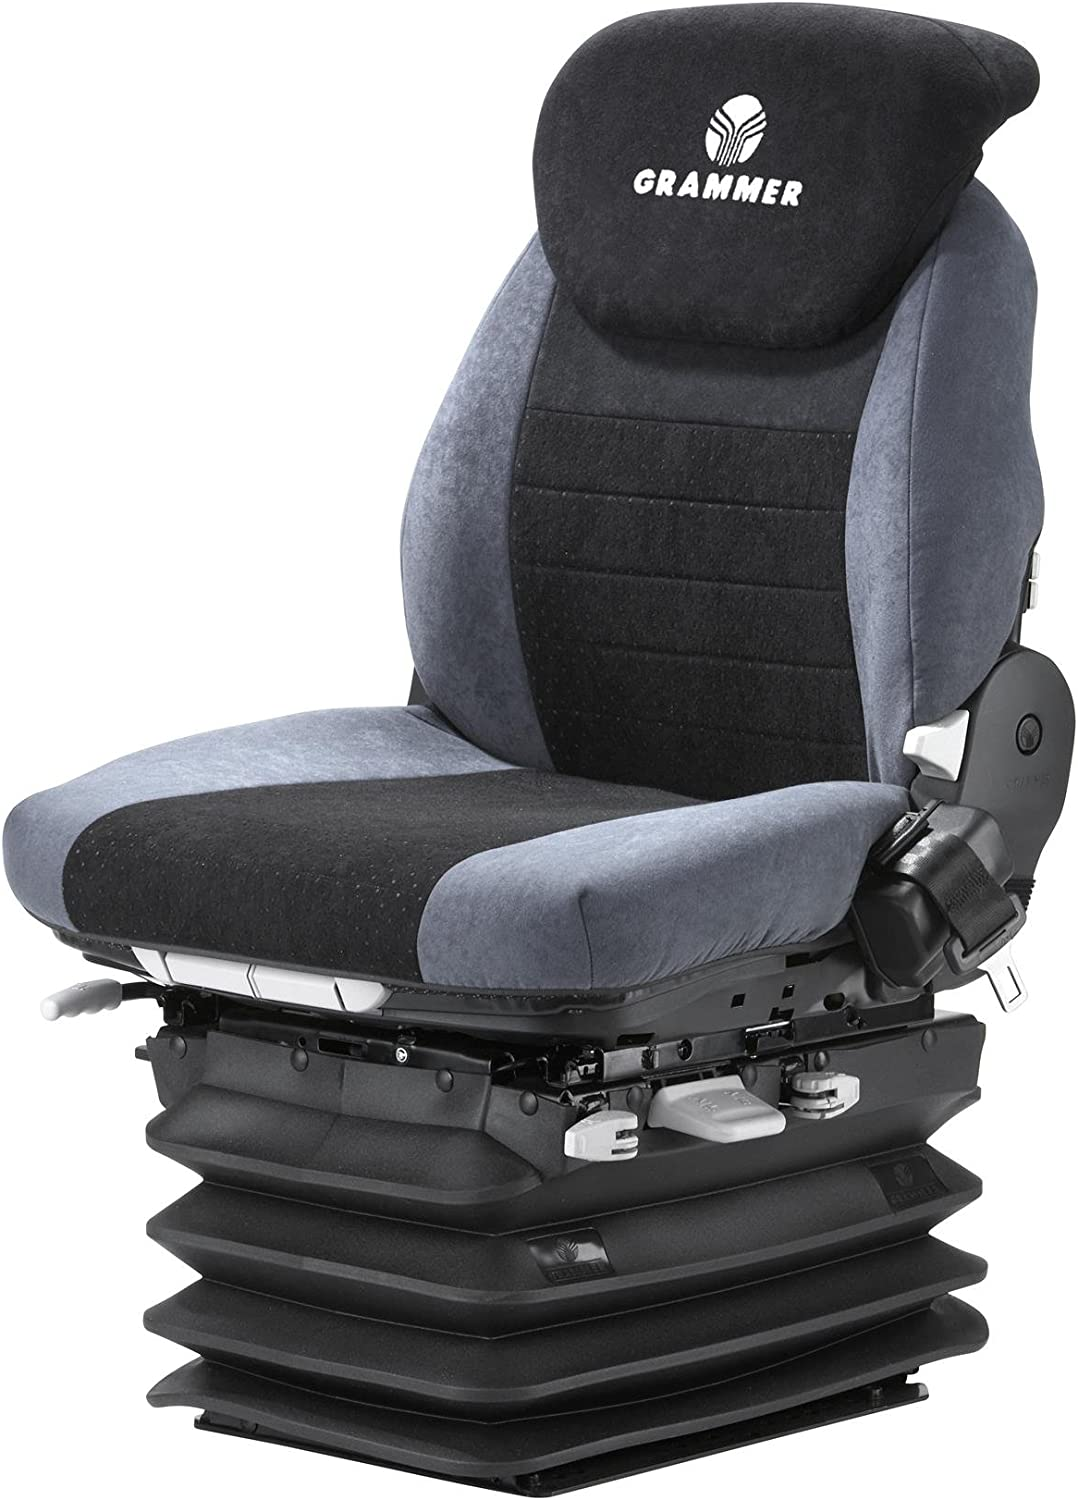 Protecto Maximo Grammer Cover Offroad For Tractor Seat Auto